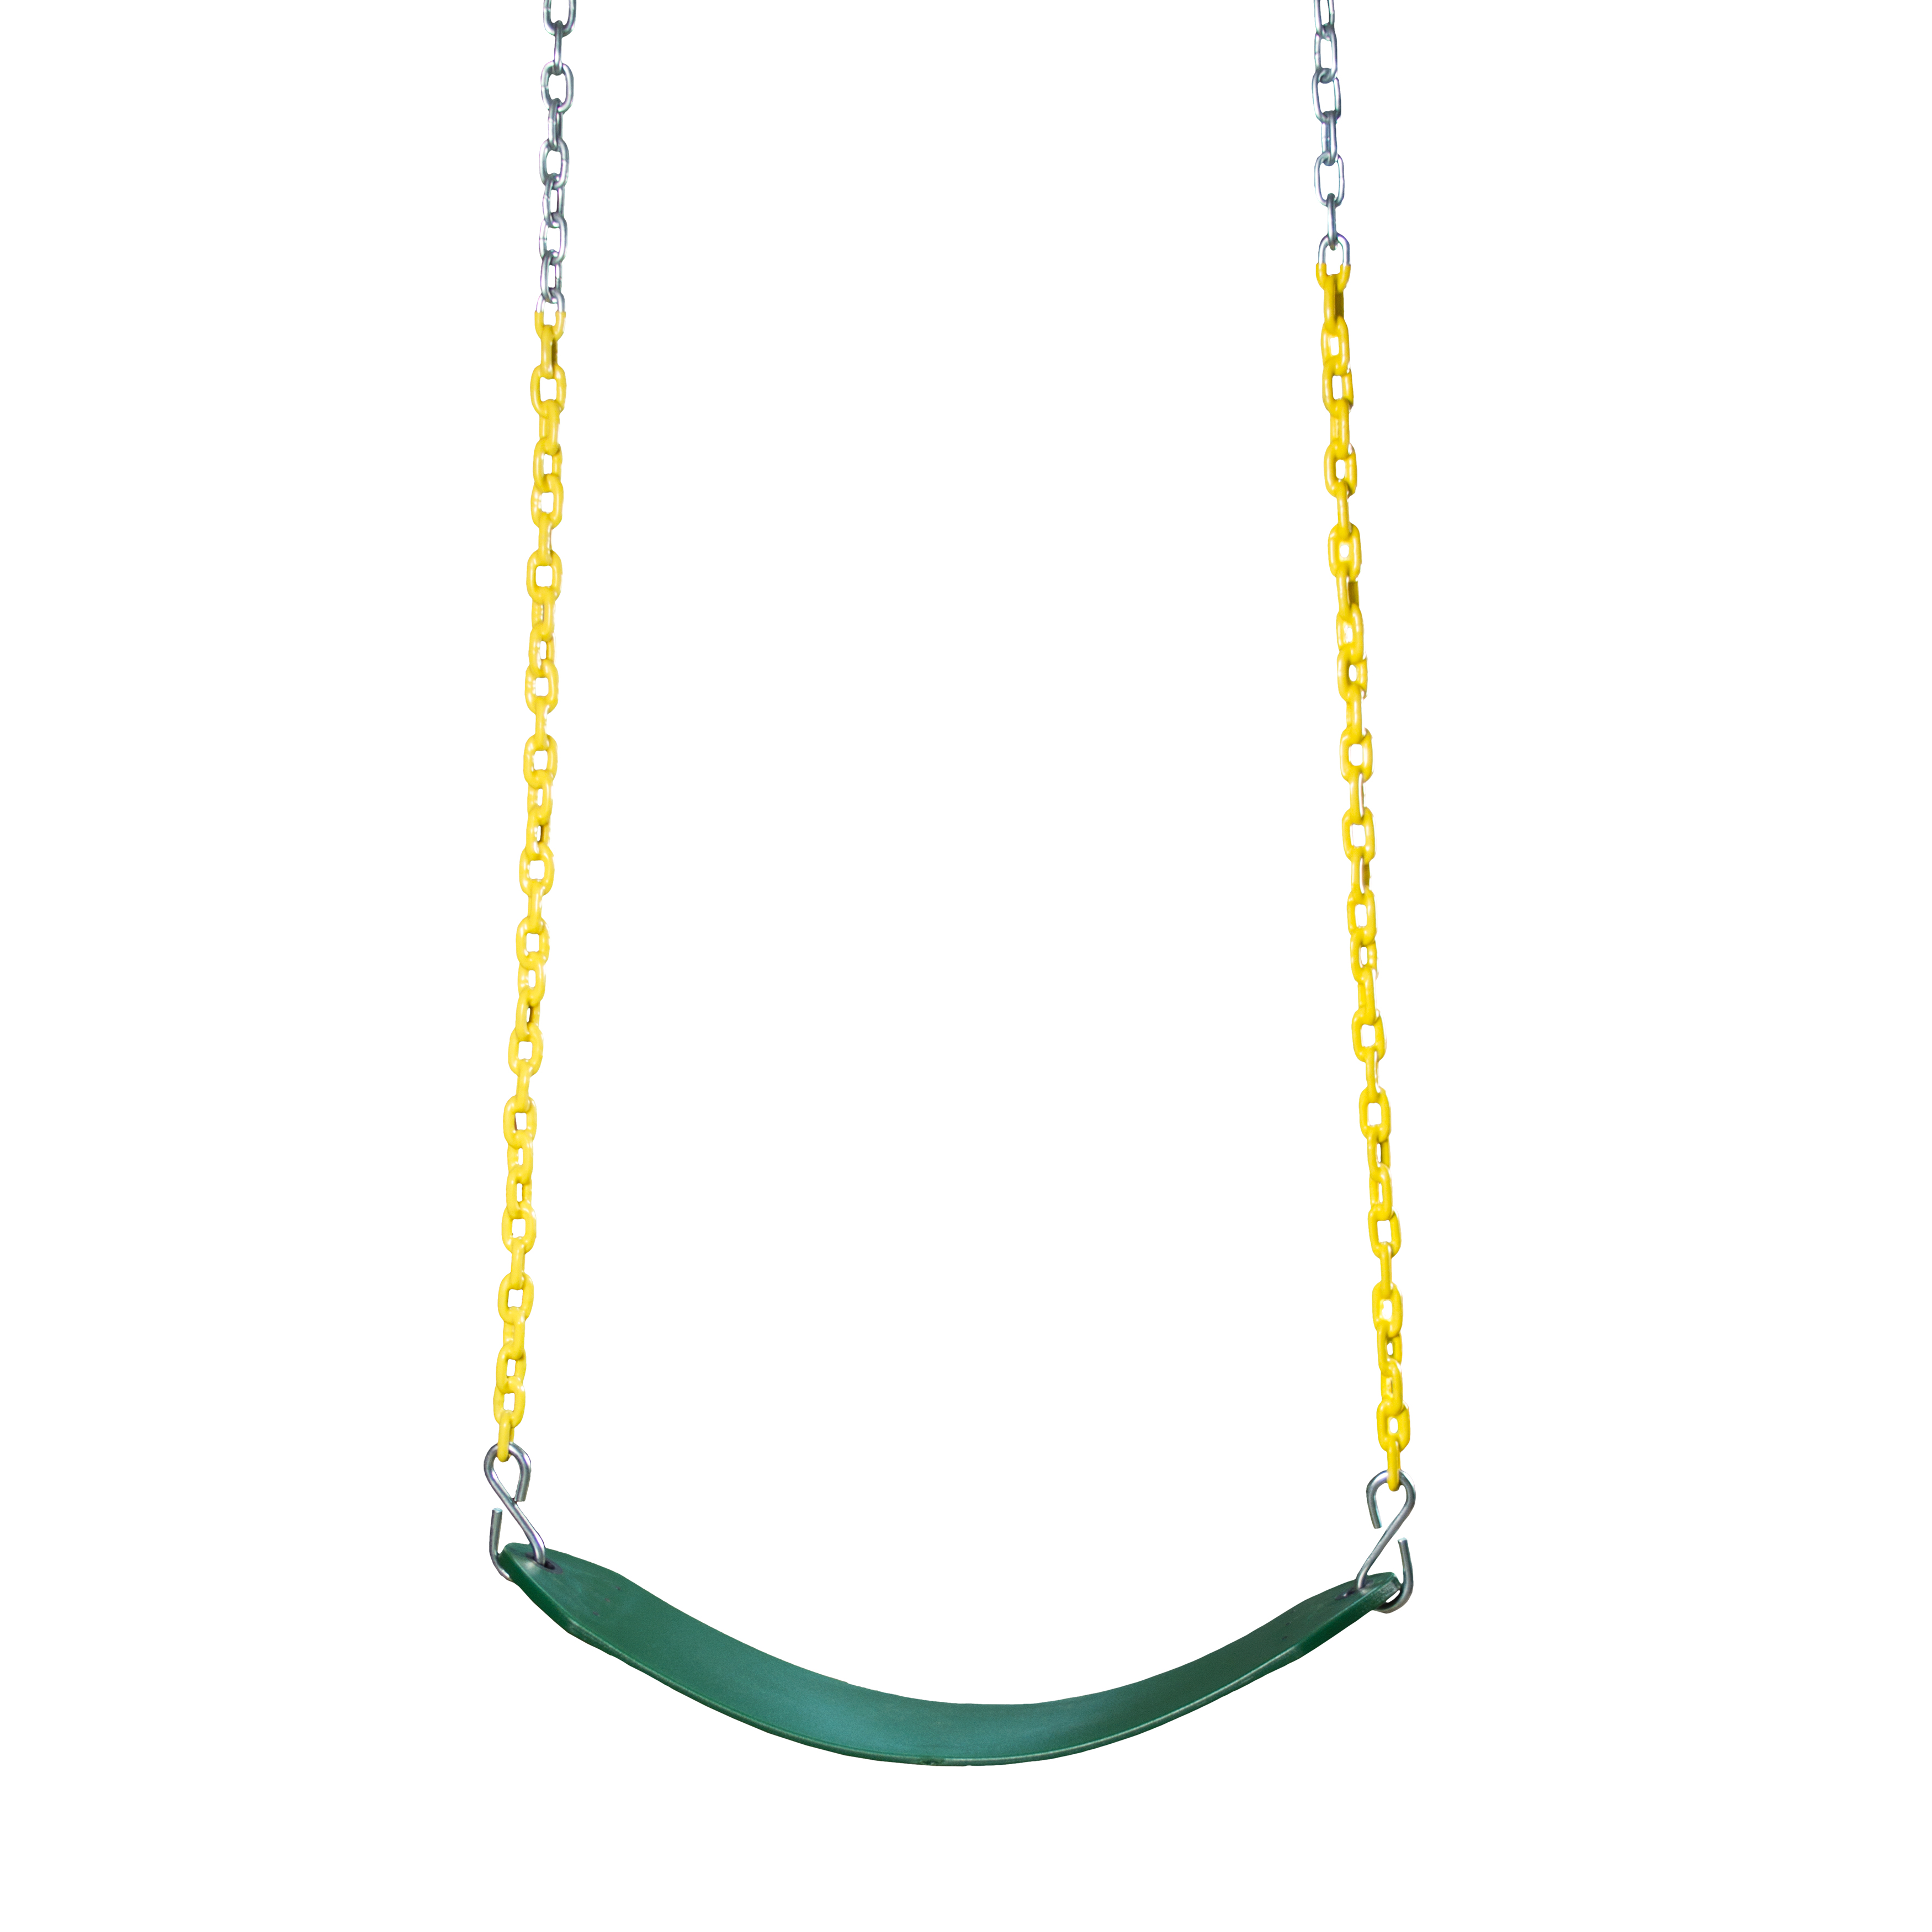 Gorilla Playsets Deluxe Swing Belt, Green with Yellow Chain